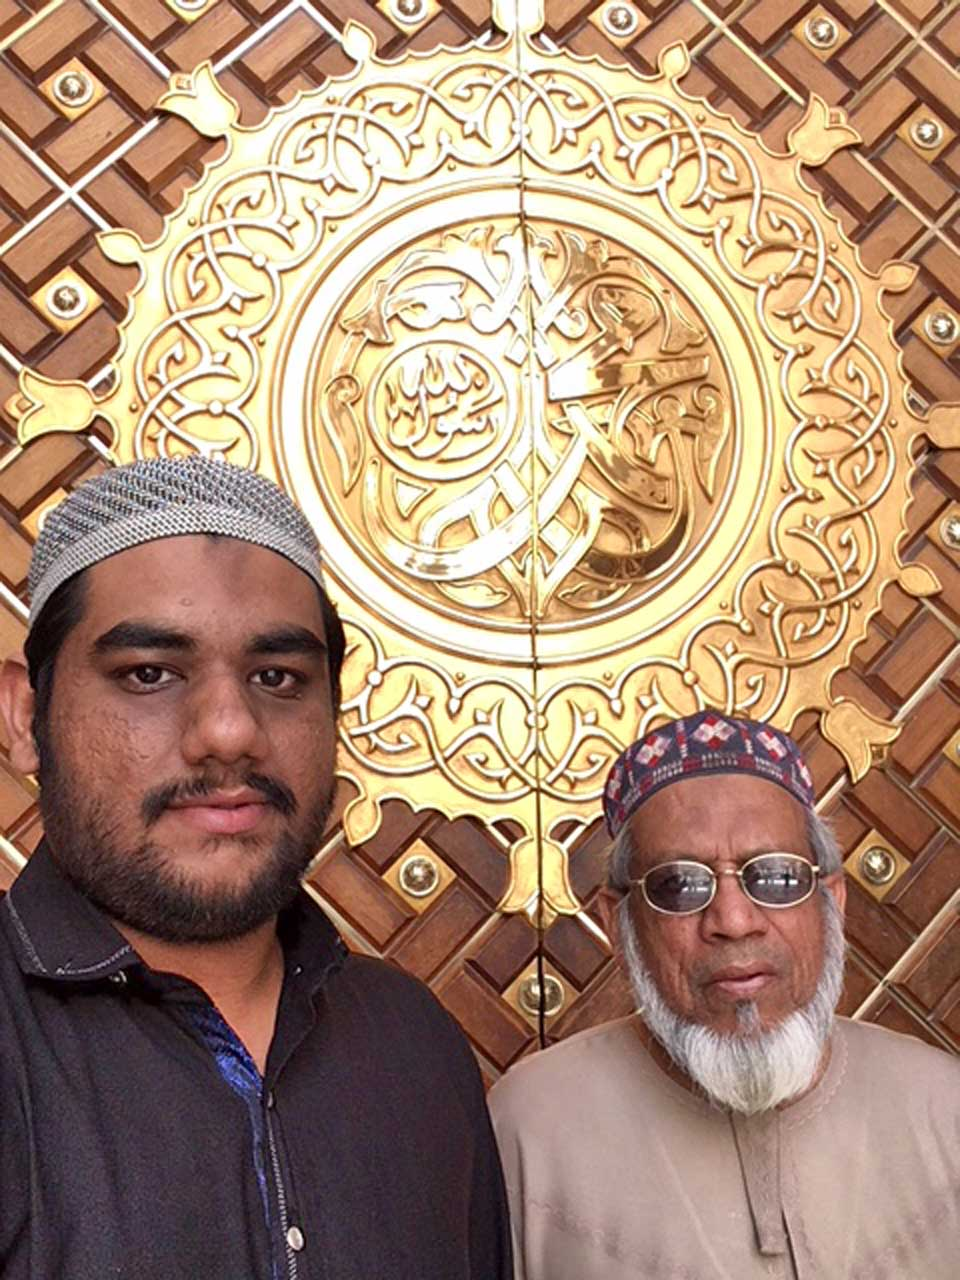 Engr. Taha Ahmed Khan and Engr. Iqbal Ahmed Khan at the entry gate of Masjid-e-Nabwi